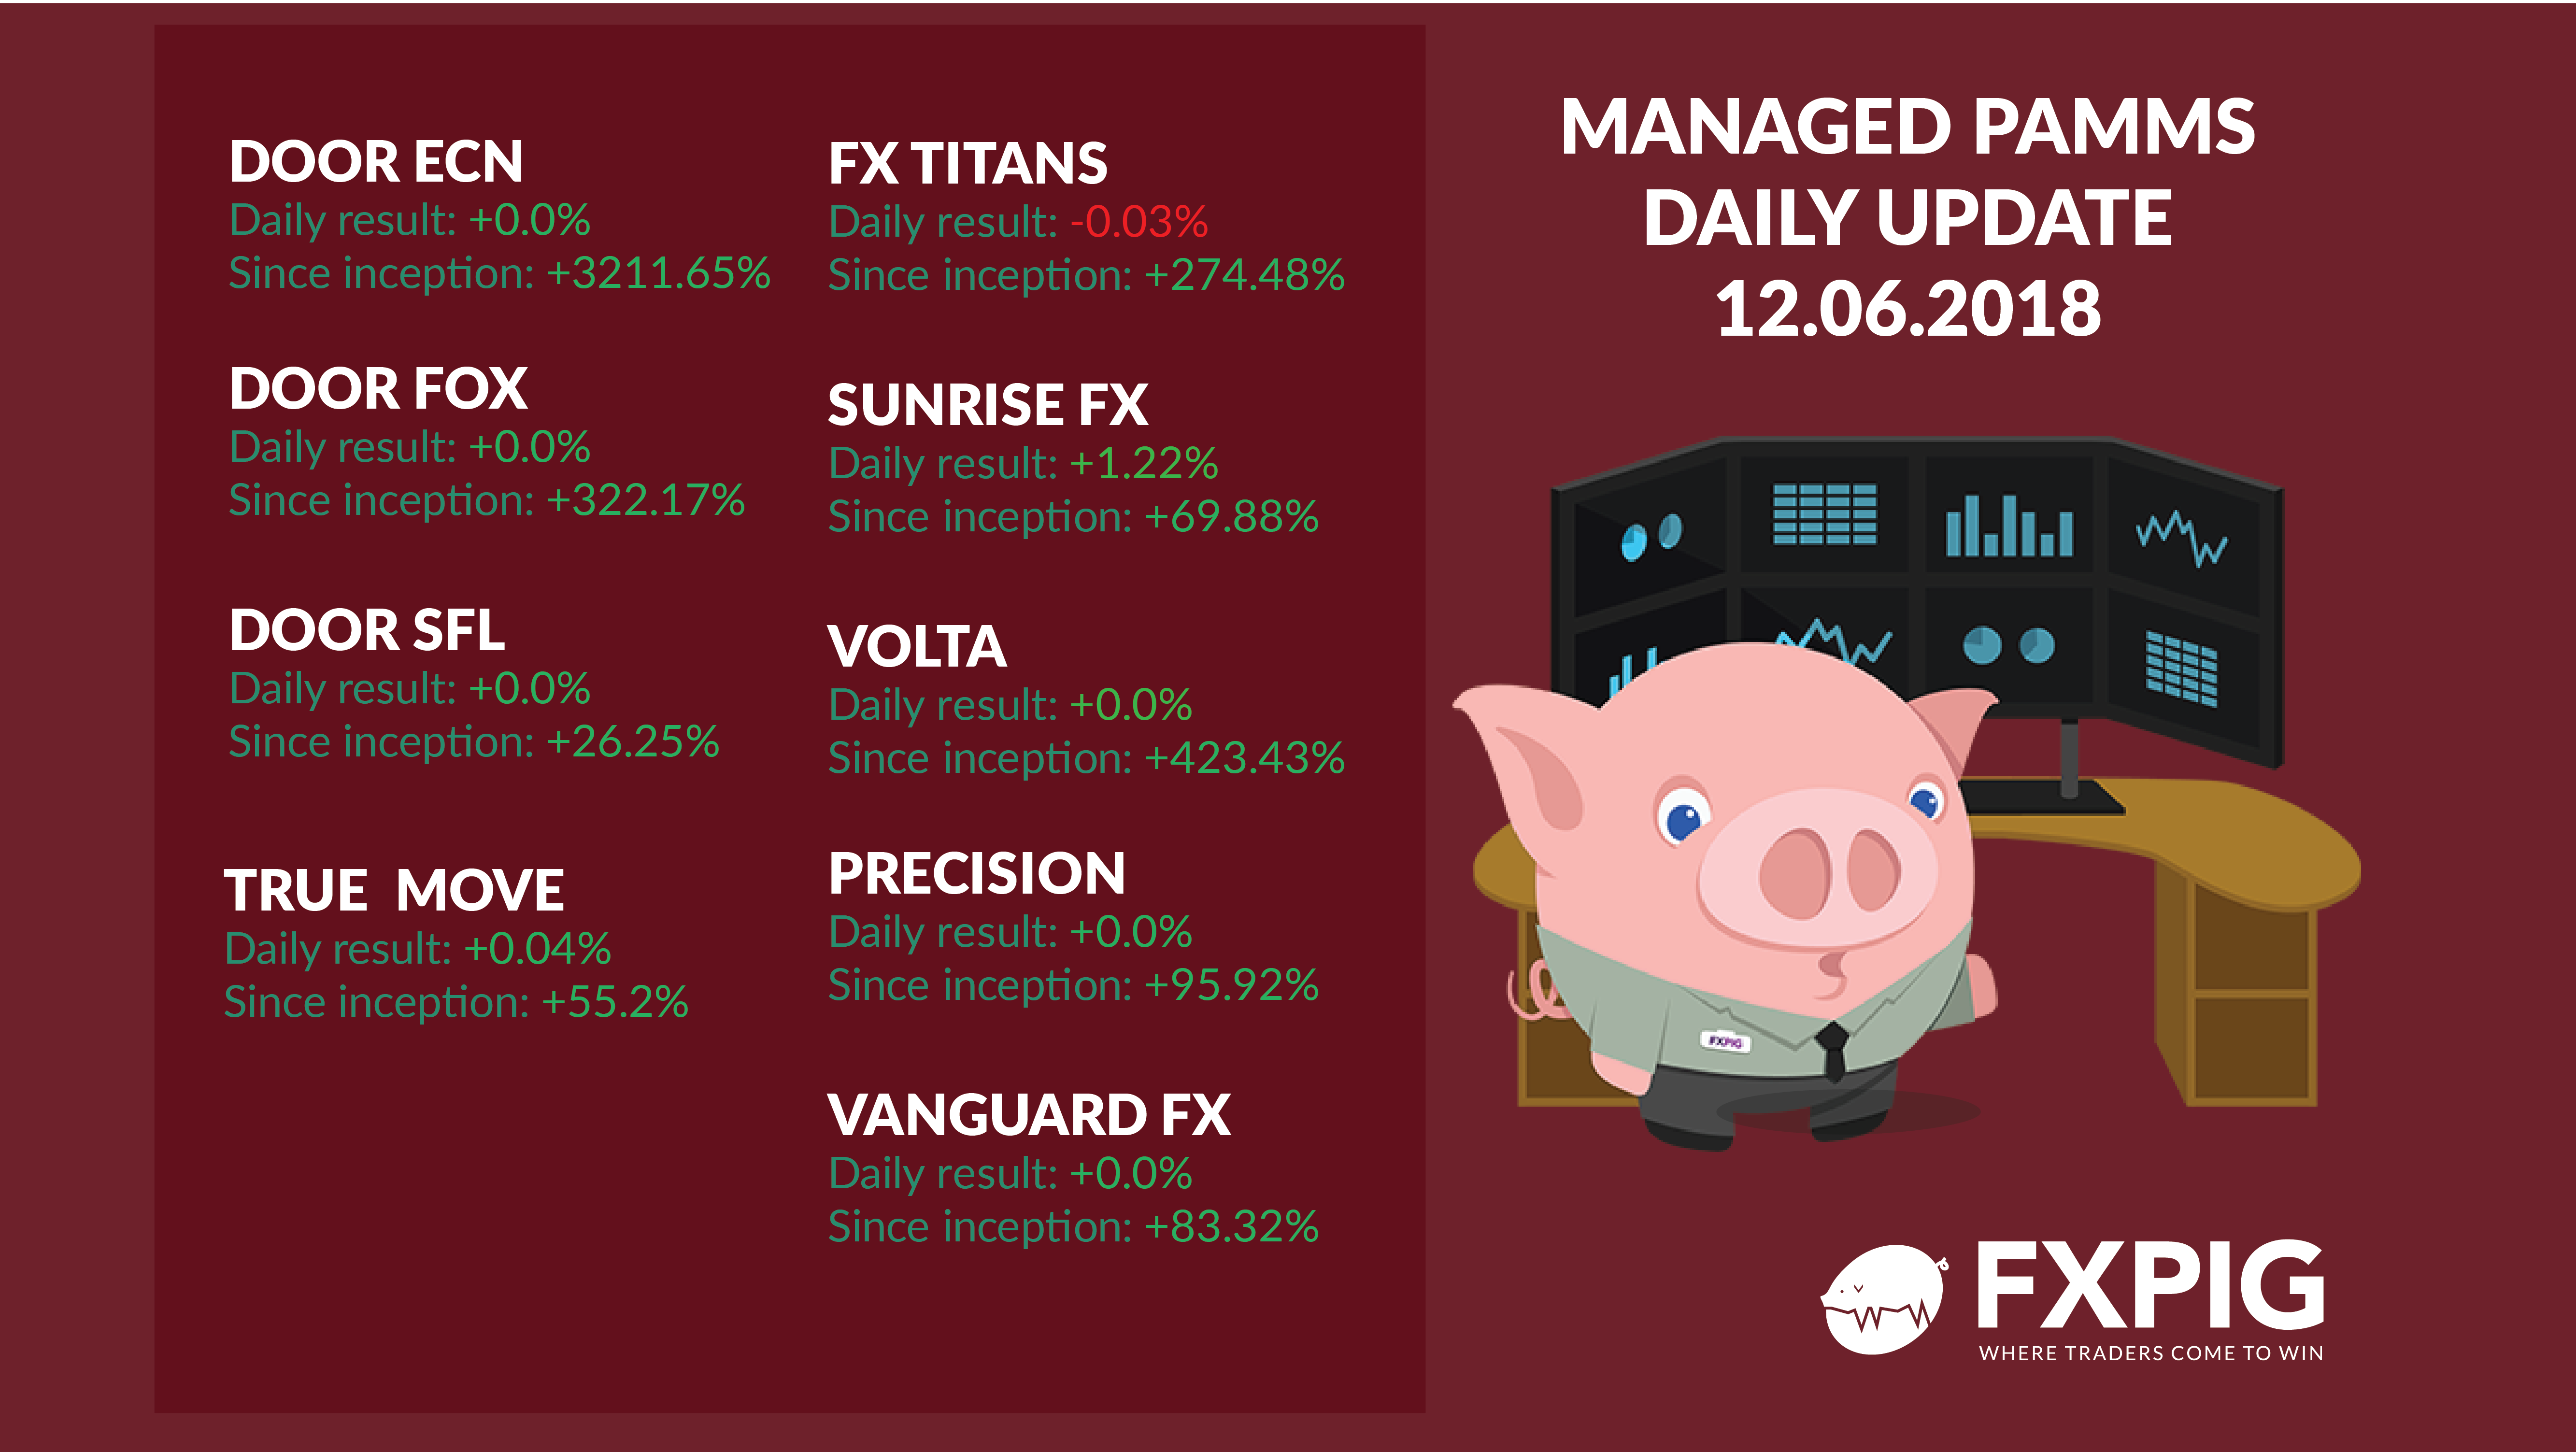 FOREX_managed-daily-accounts1206_FXPIG